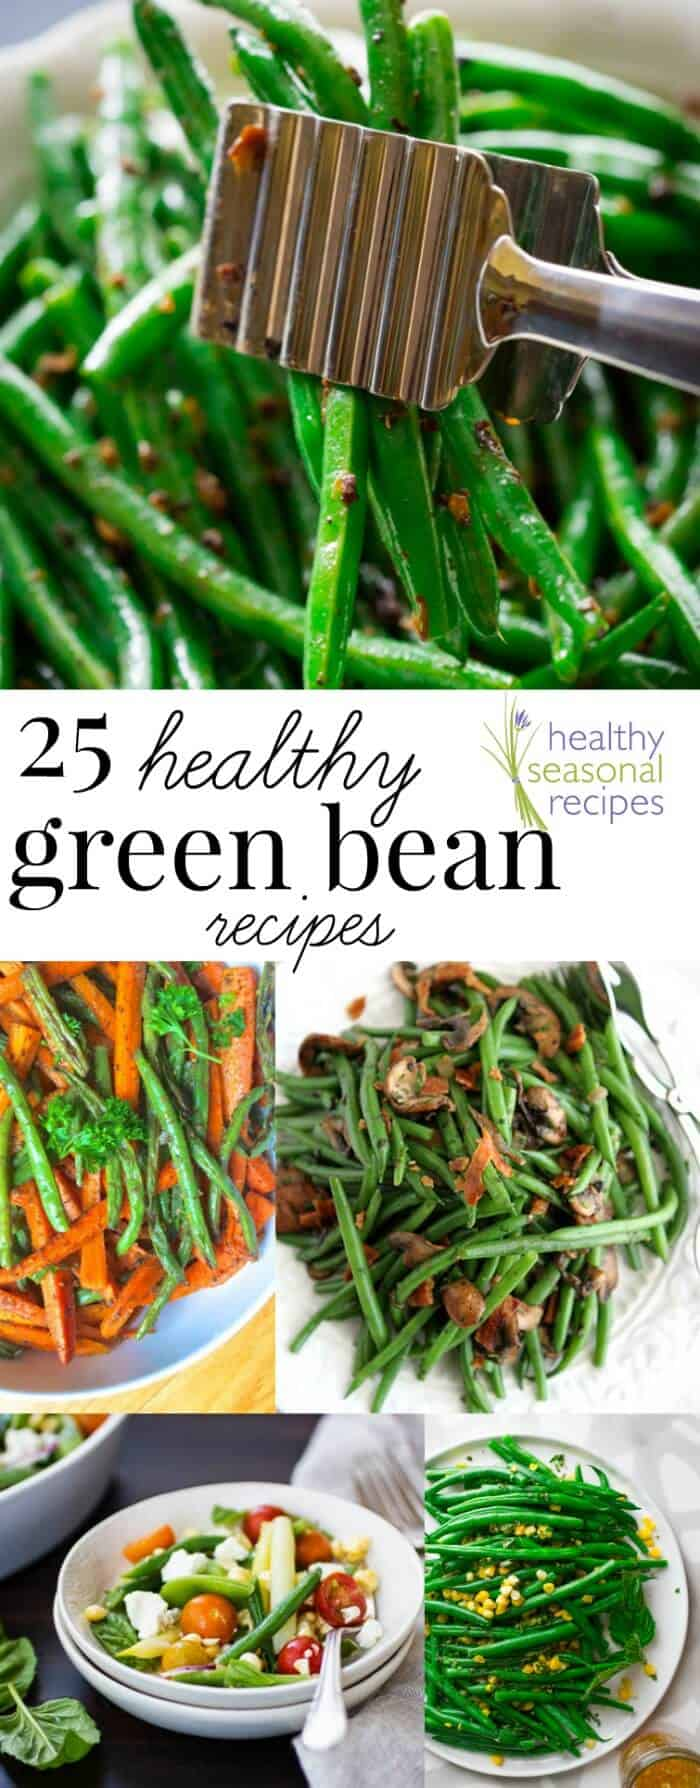 25 Healthy Green Bean Recipes! on Healthy Seasonal Recipes!